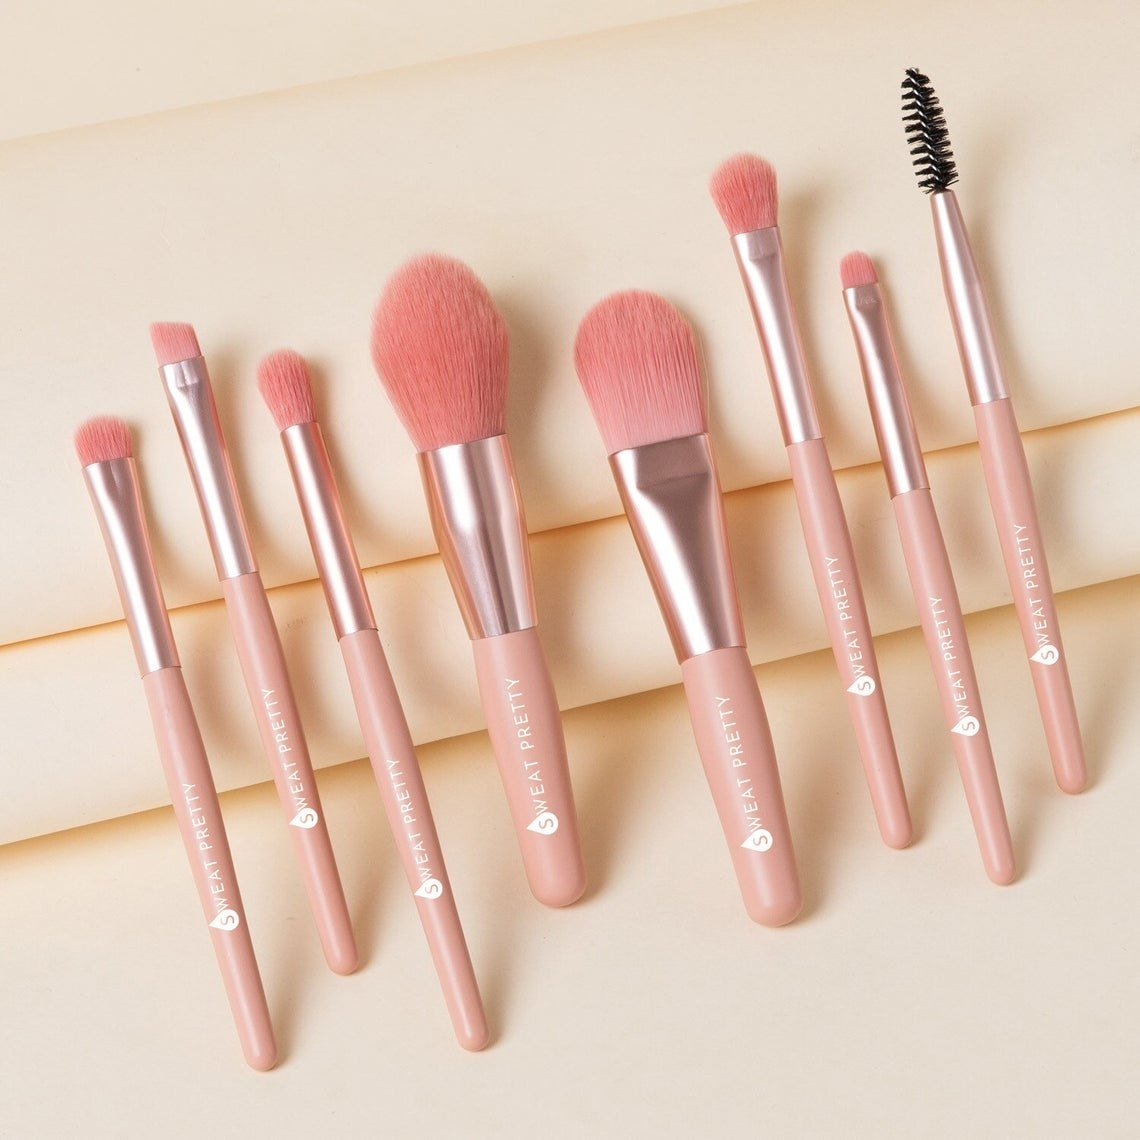 The set of pink makeup brushes